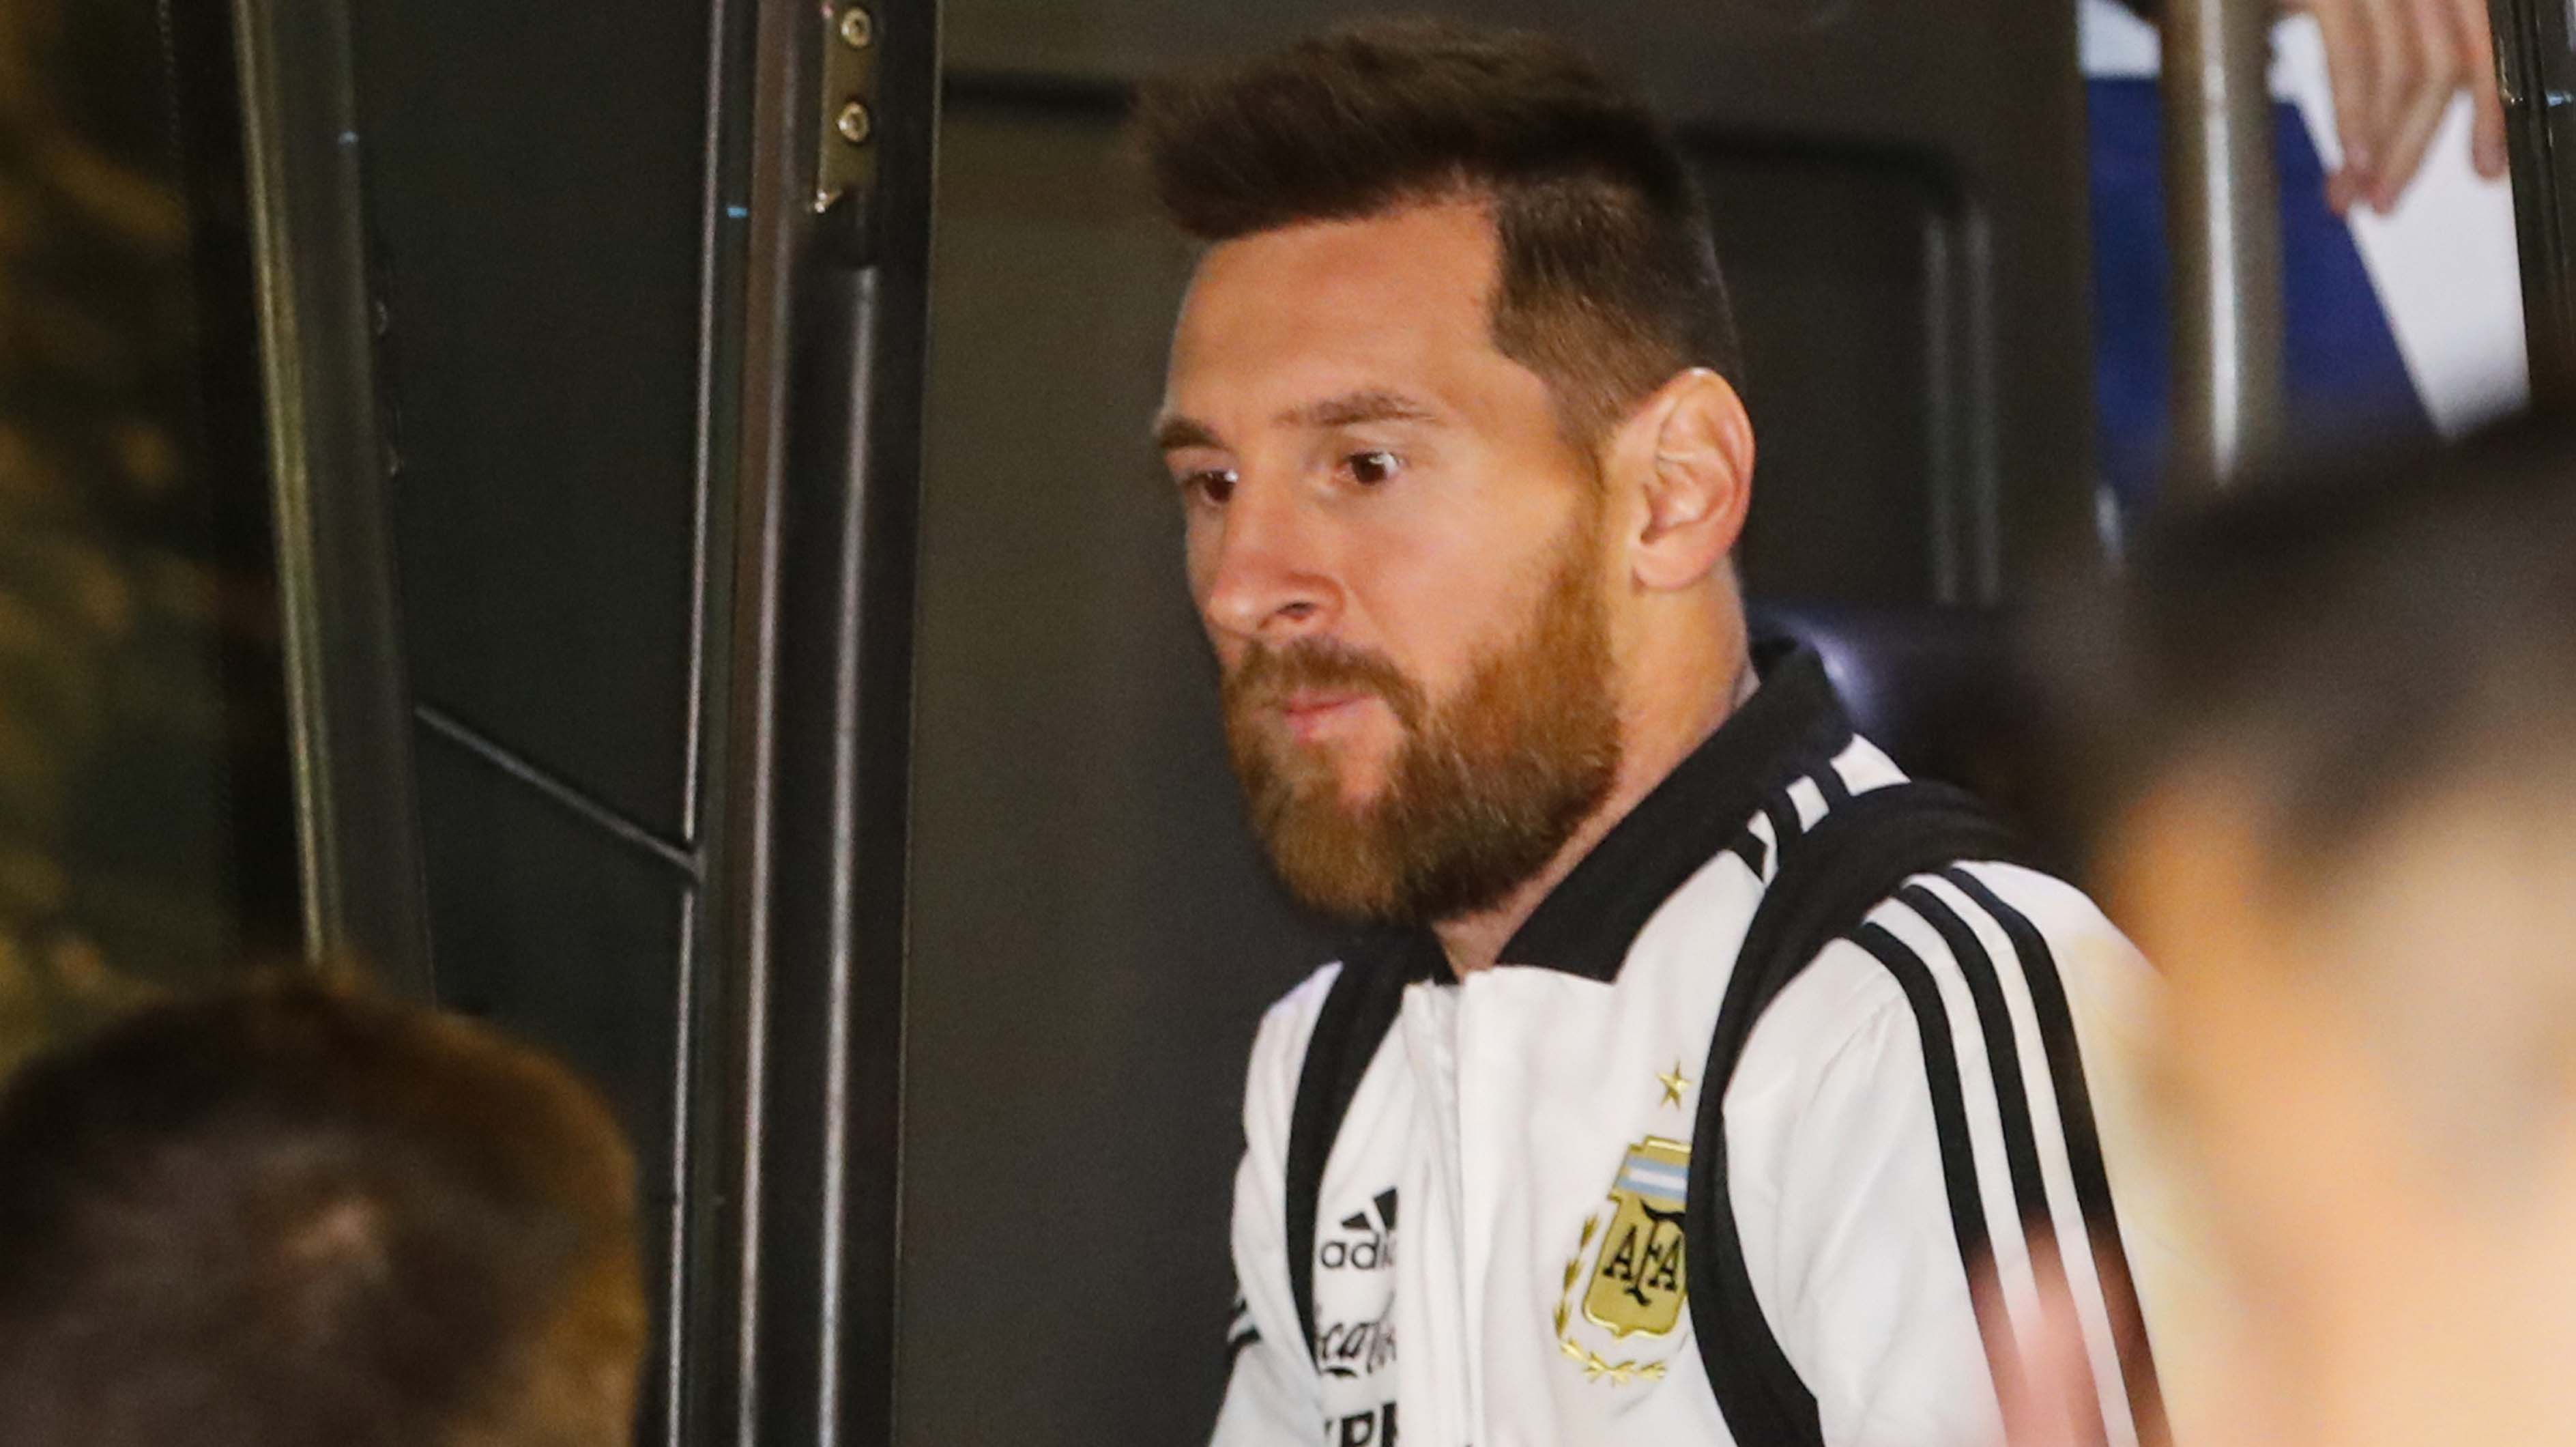 Messi-led Argentina arrive in Israel for Uruguay friendly